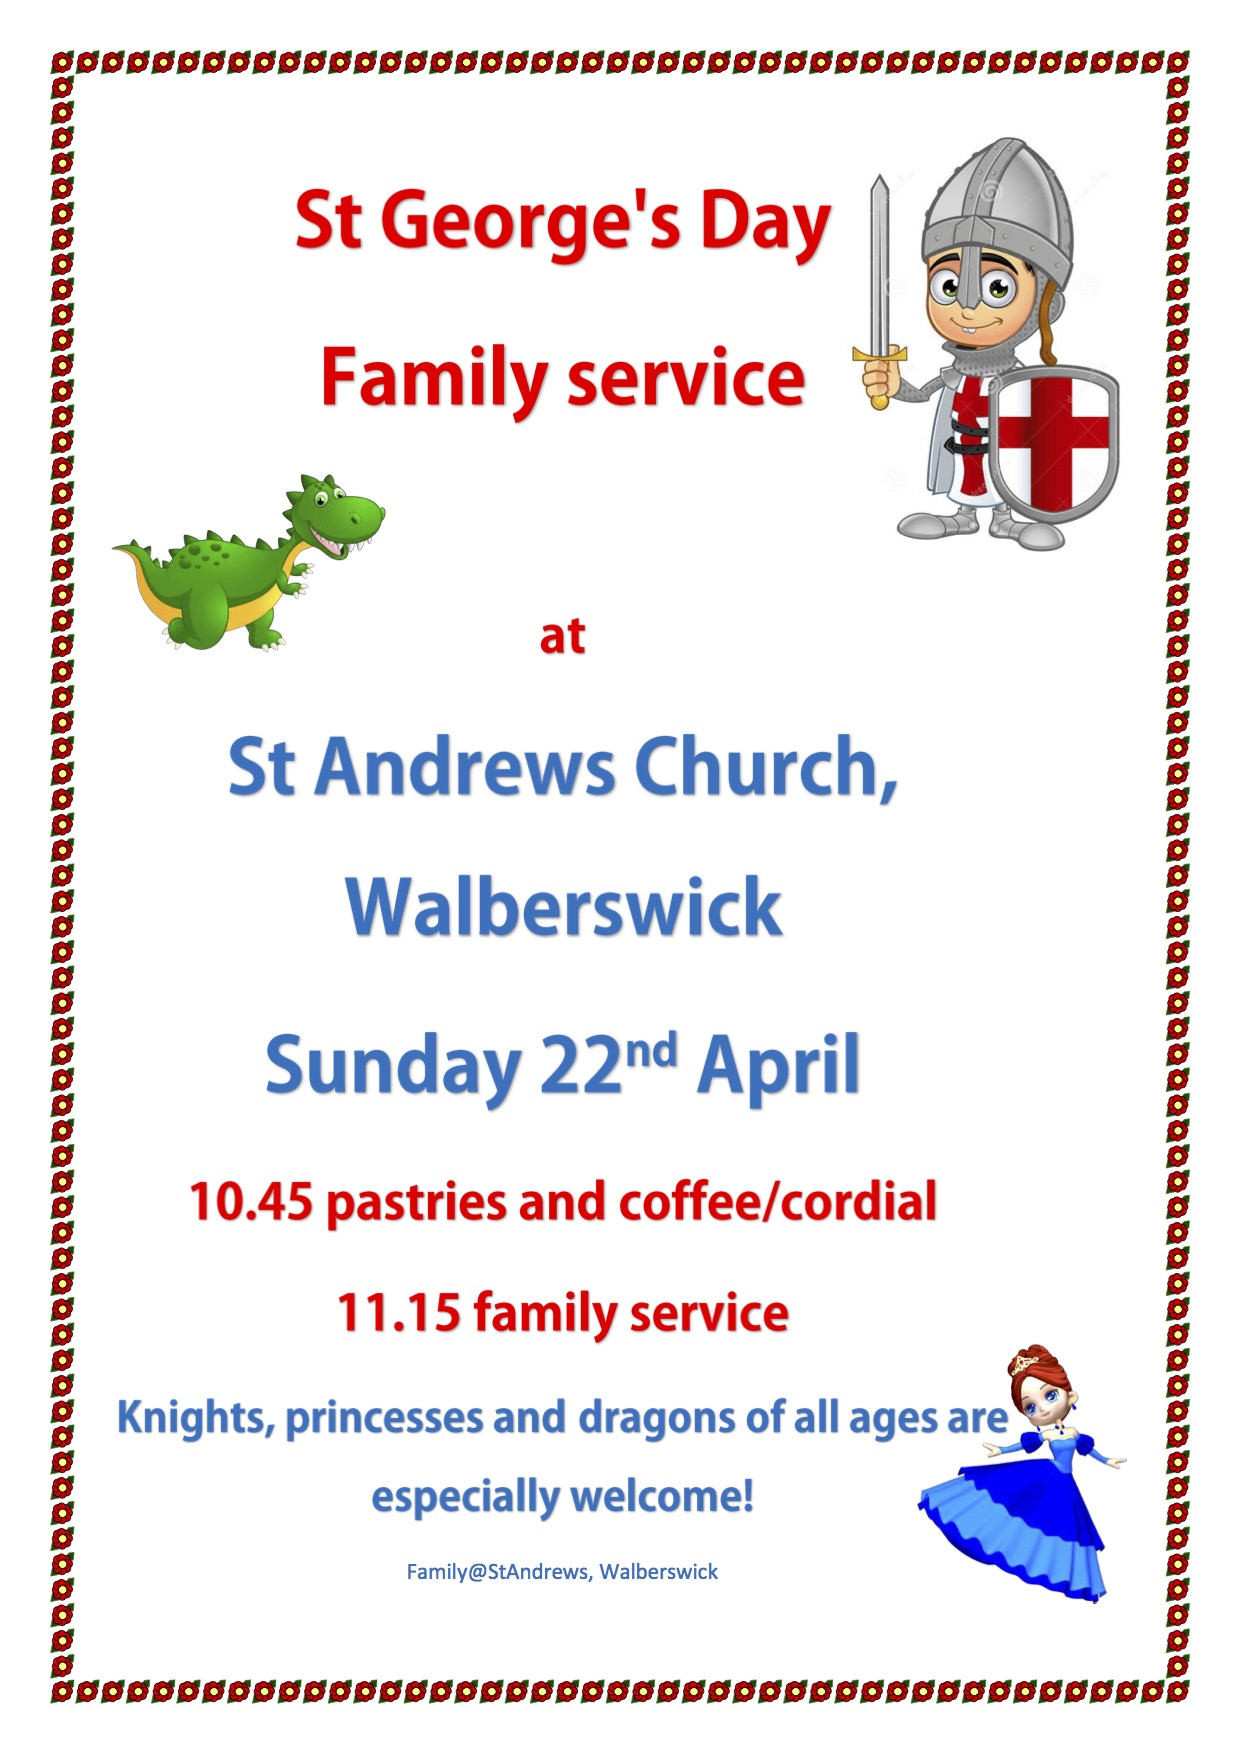 St George's Day at St Andrew's